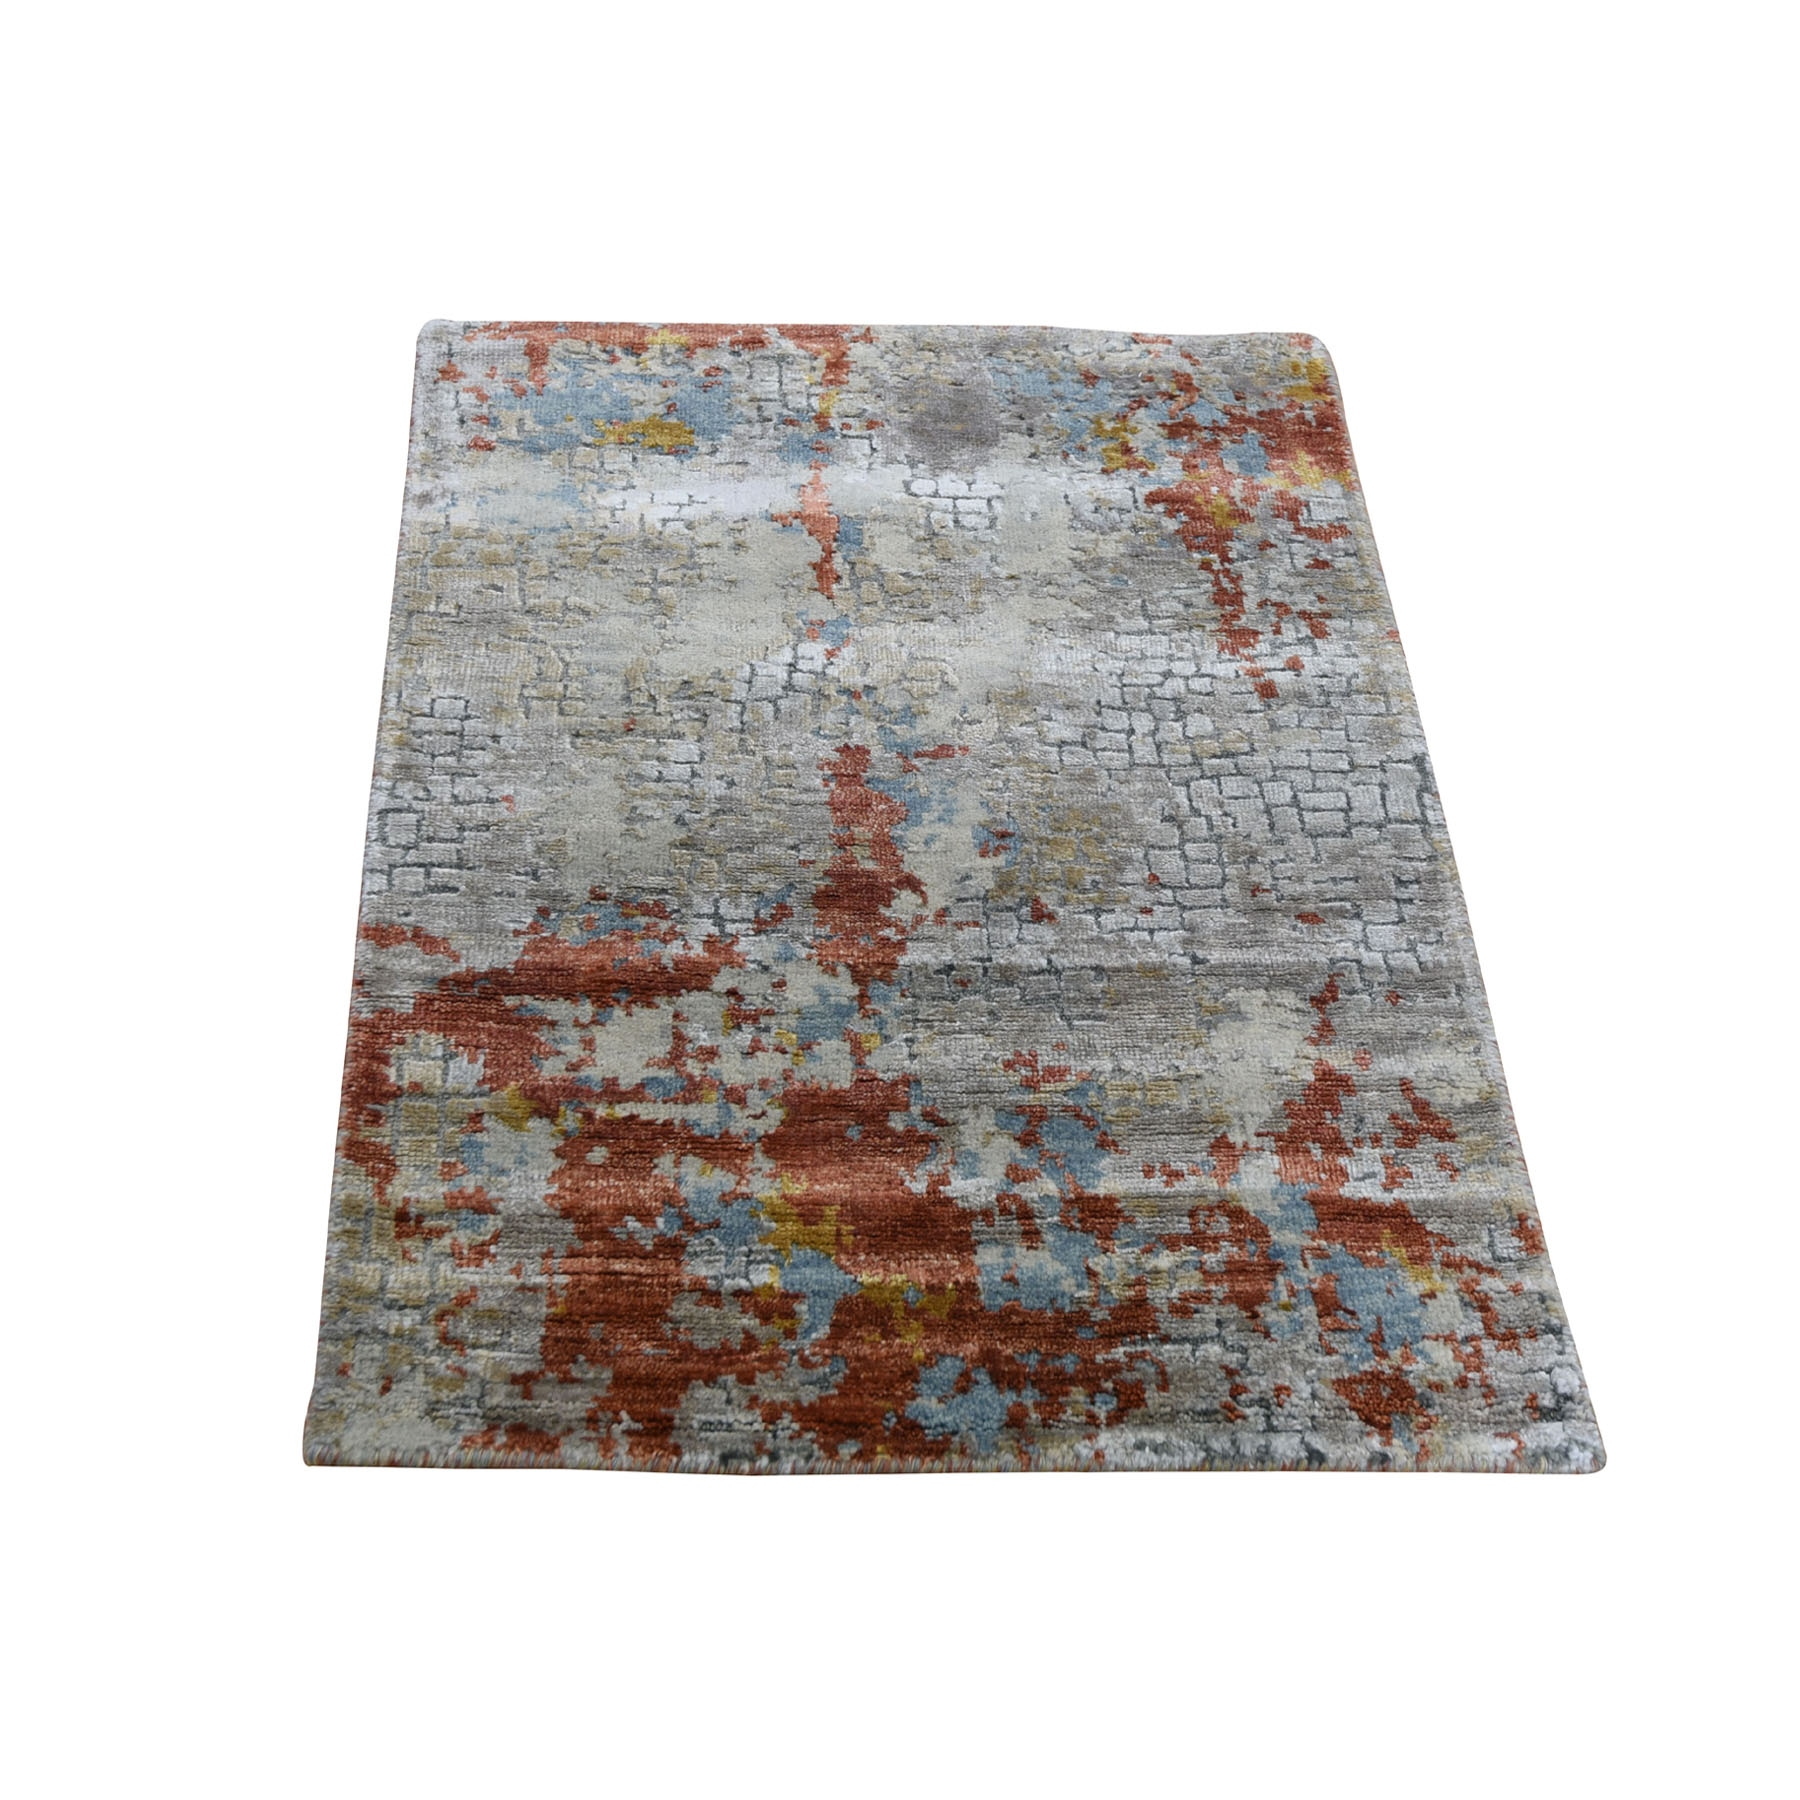 2'x3' Wool And Silk Abstract With Fire Mosaic Design Hand-Knotted Oriental Rug